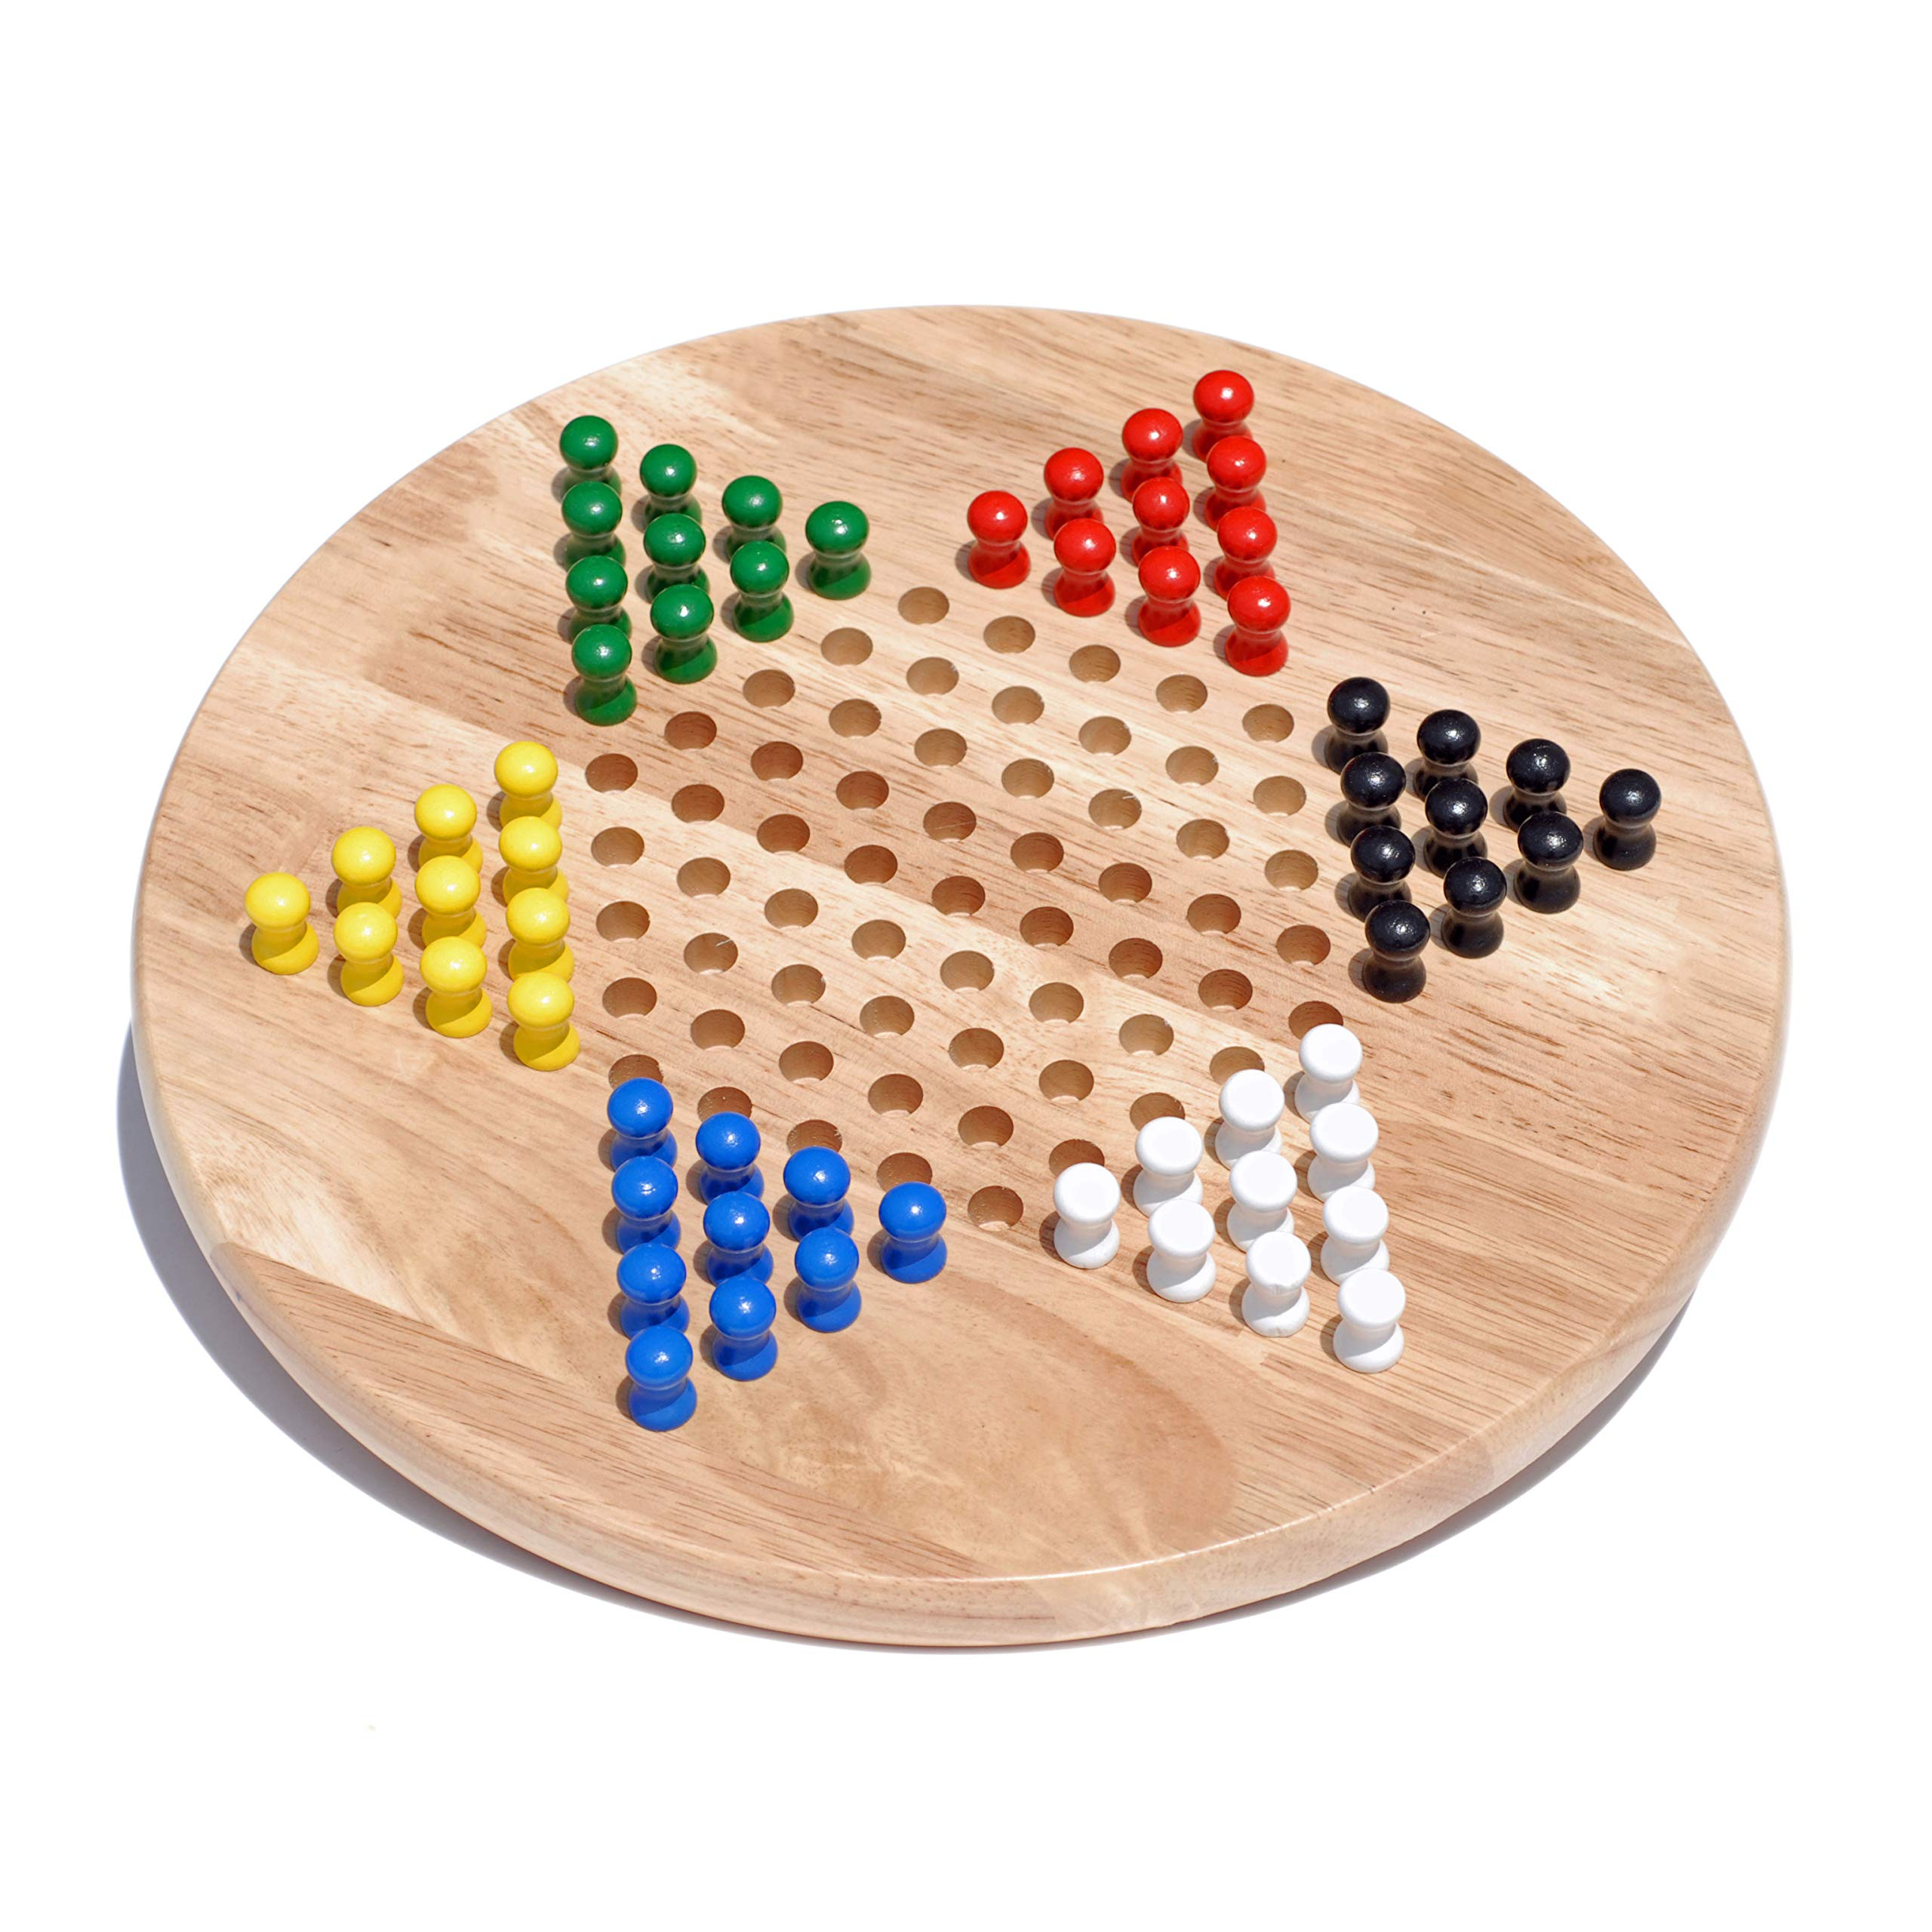 WE Games Solid Wood Chinese Checkers Board Game with Pegs- 11.5 in.